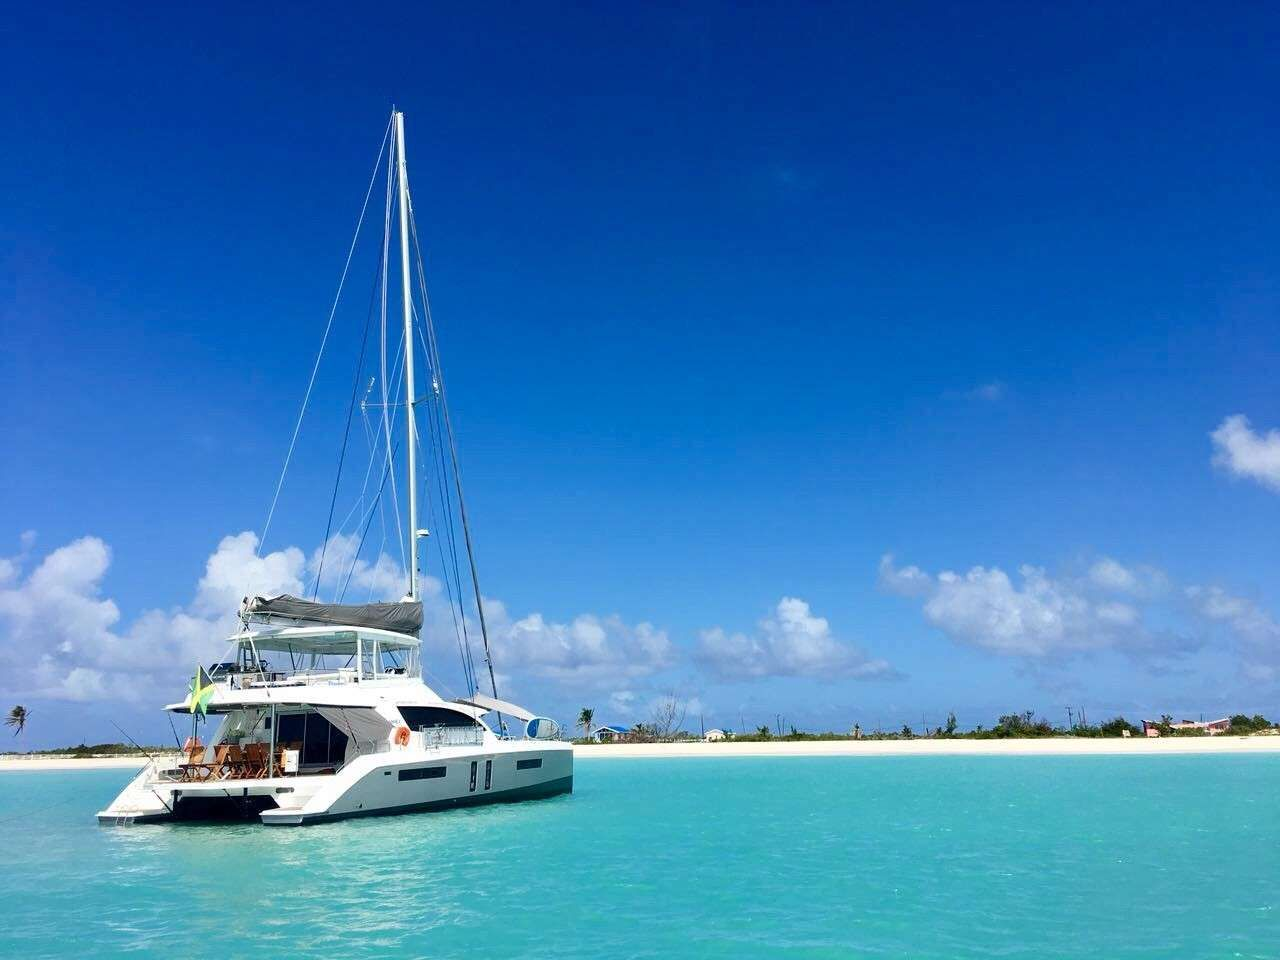 THE ANNEX Yacht Charter - Ritzy Charters